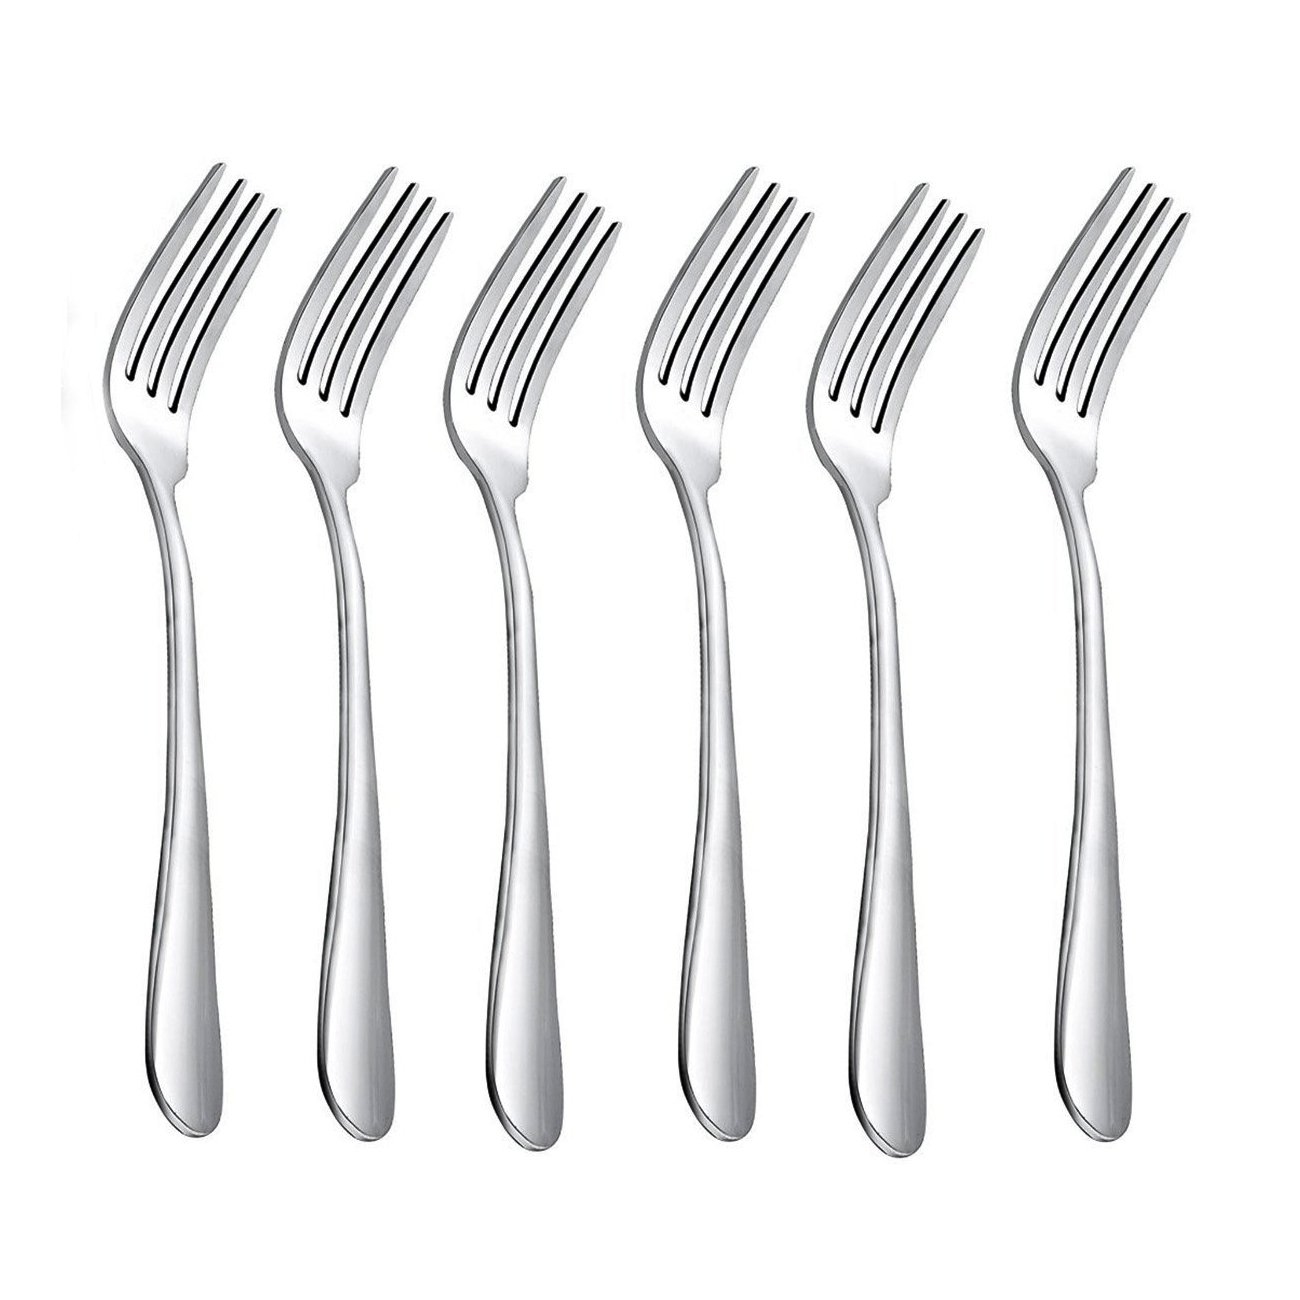 HornTide 20-Piece Dinner Forks Set 4 Tines Table Fork Flatware Stainless Steel Mirror Polishing 7-Inch 18cm